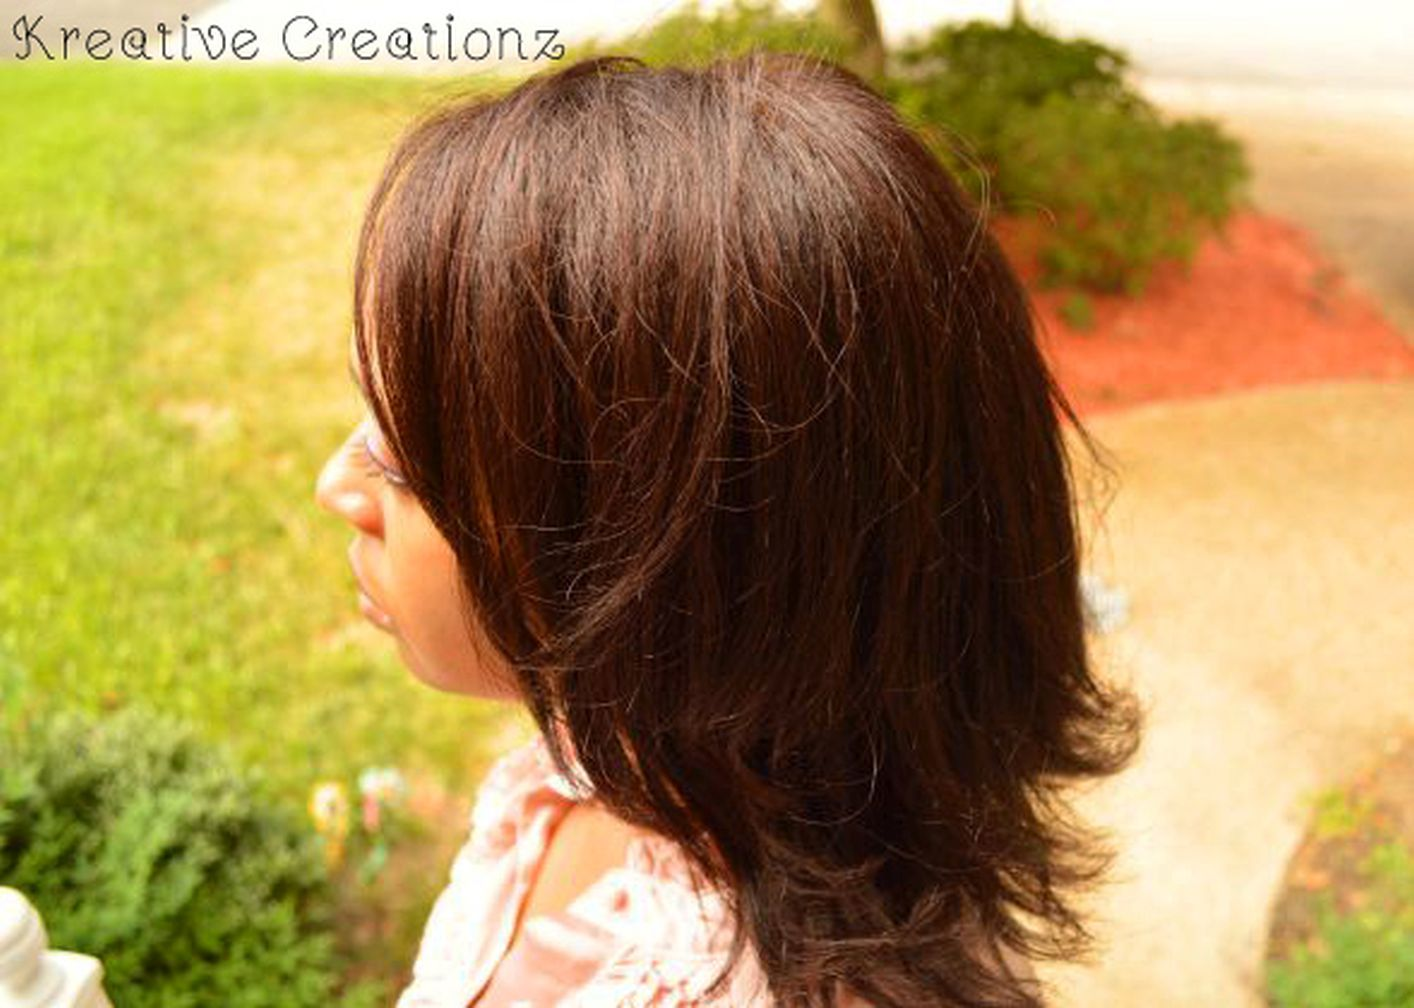 How to dye hair with henna as a natural alternative the kreative life solutioingenieria Gallery